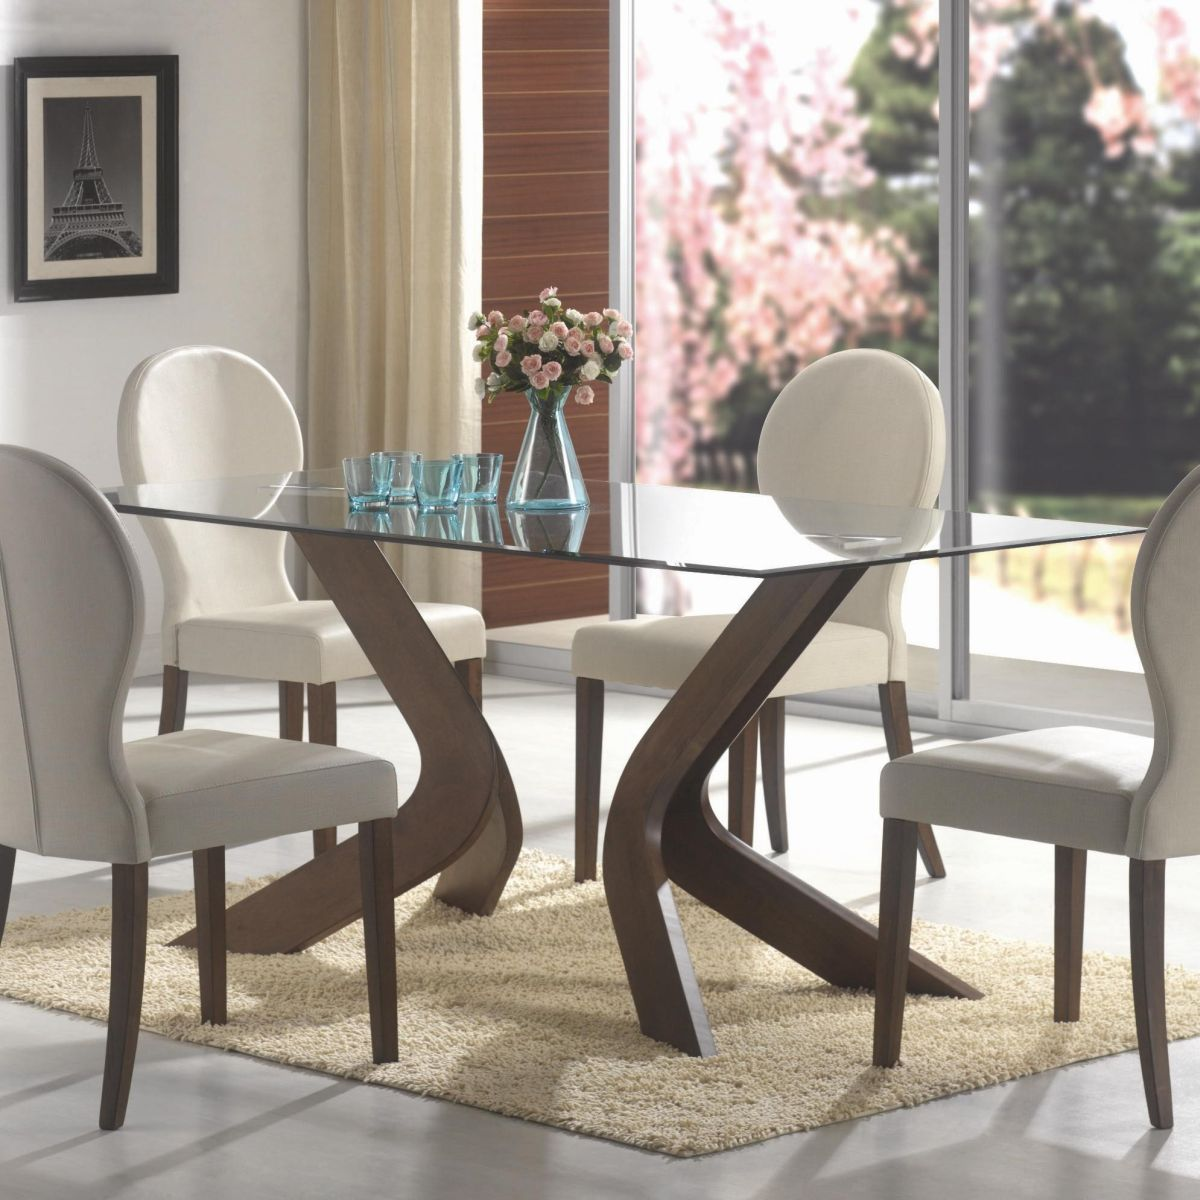 Design Glass Dining Table modern glass dining room table oval back chairs and top table40 tables to revamp with from rectangle square